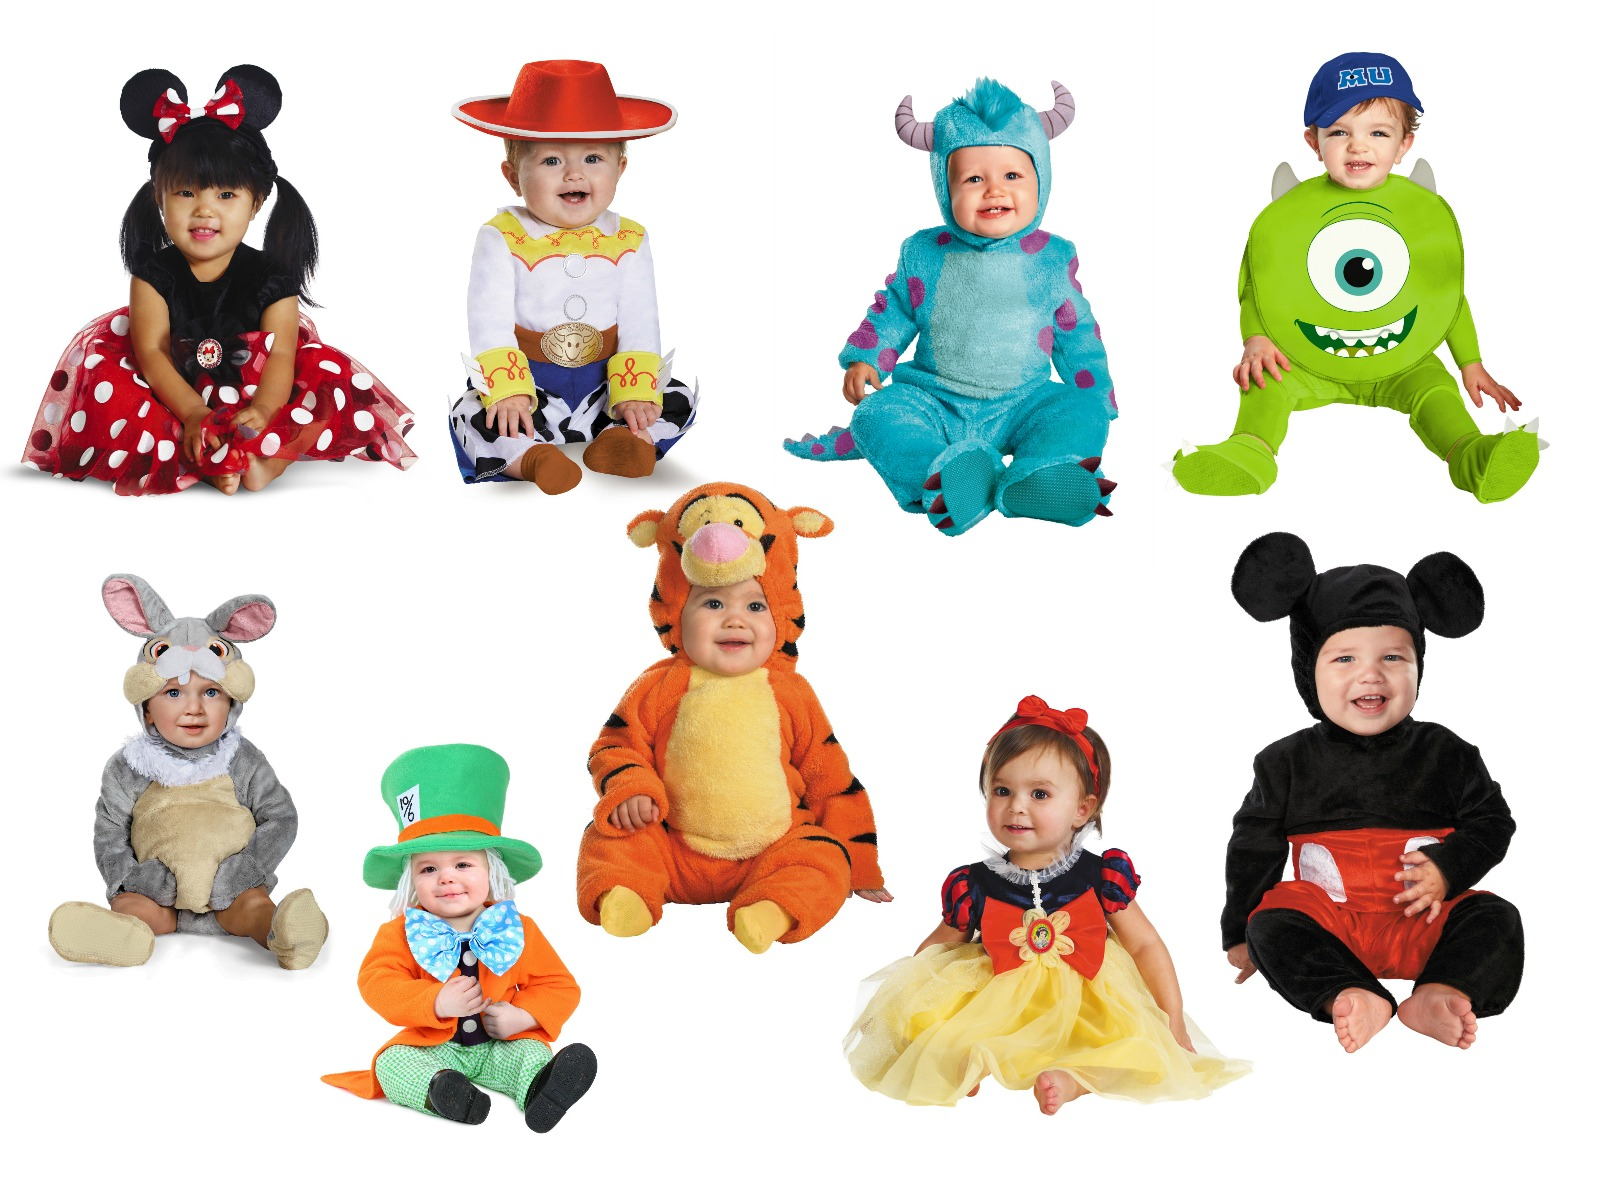 best cute baby halloween costume ideas for 2017 halloween costumes